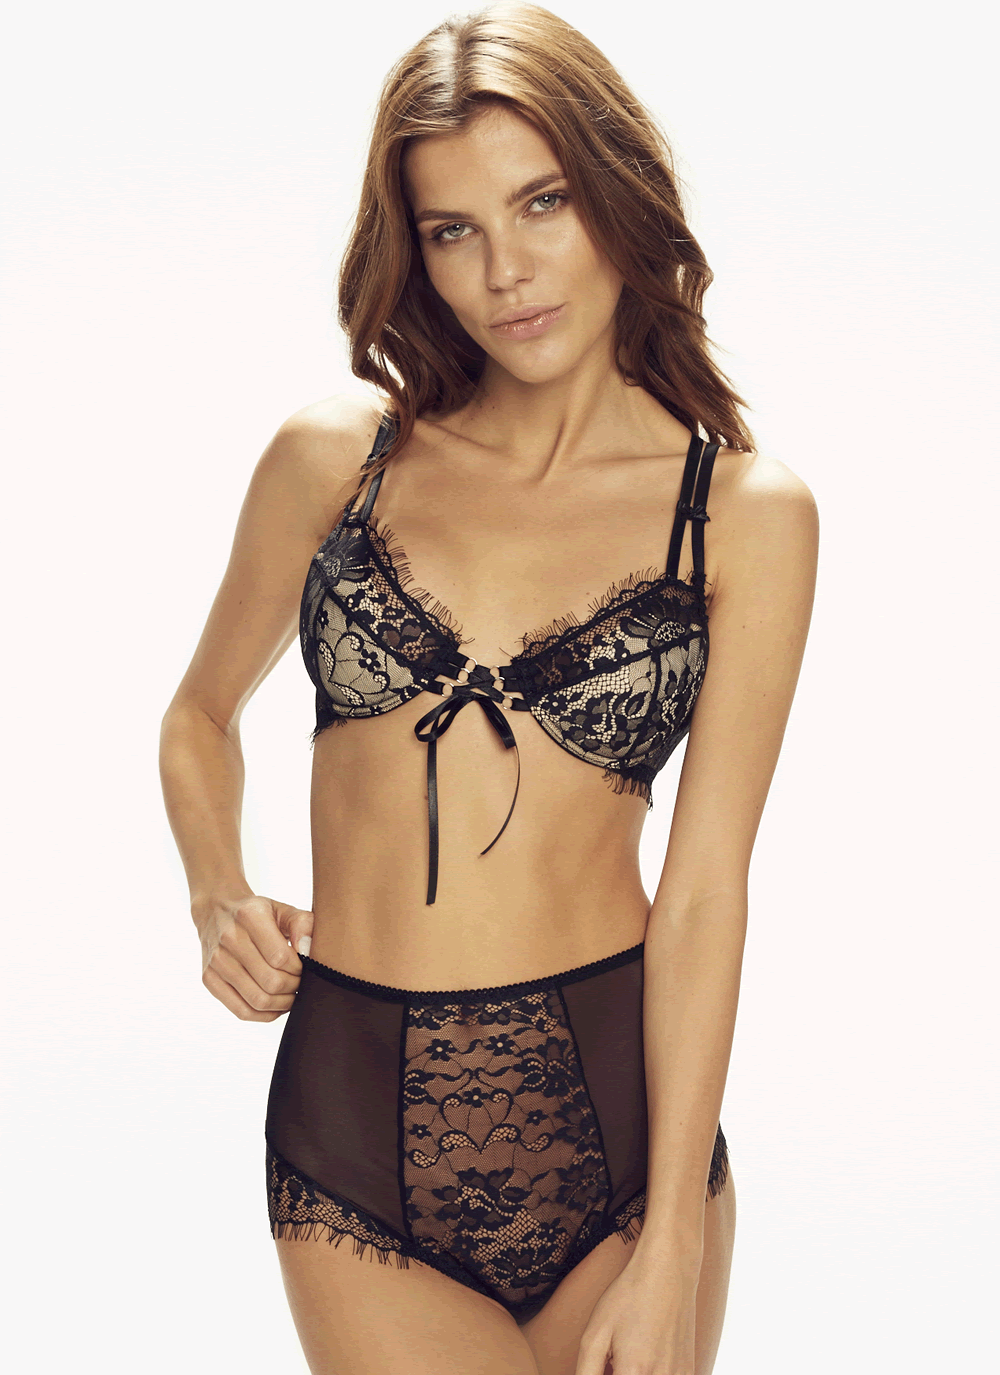 Forever Young Pushup Bra & Panty